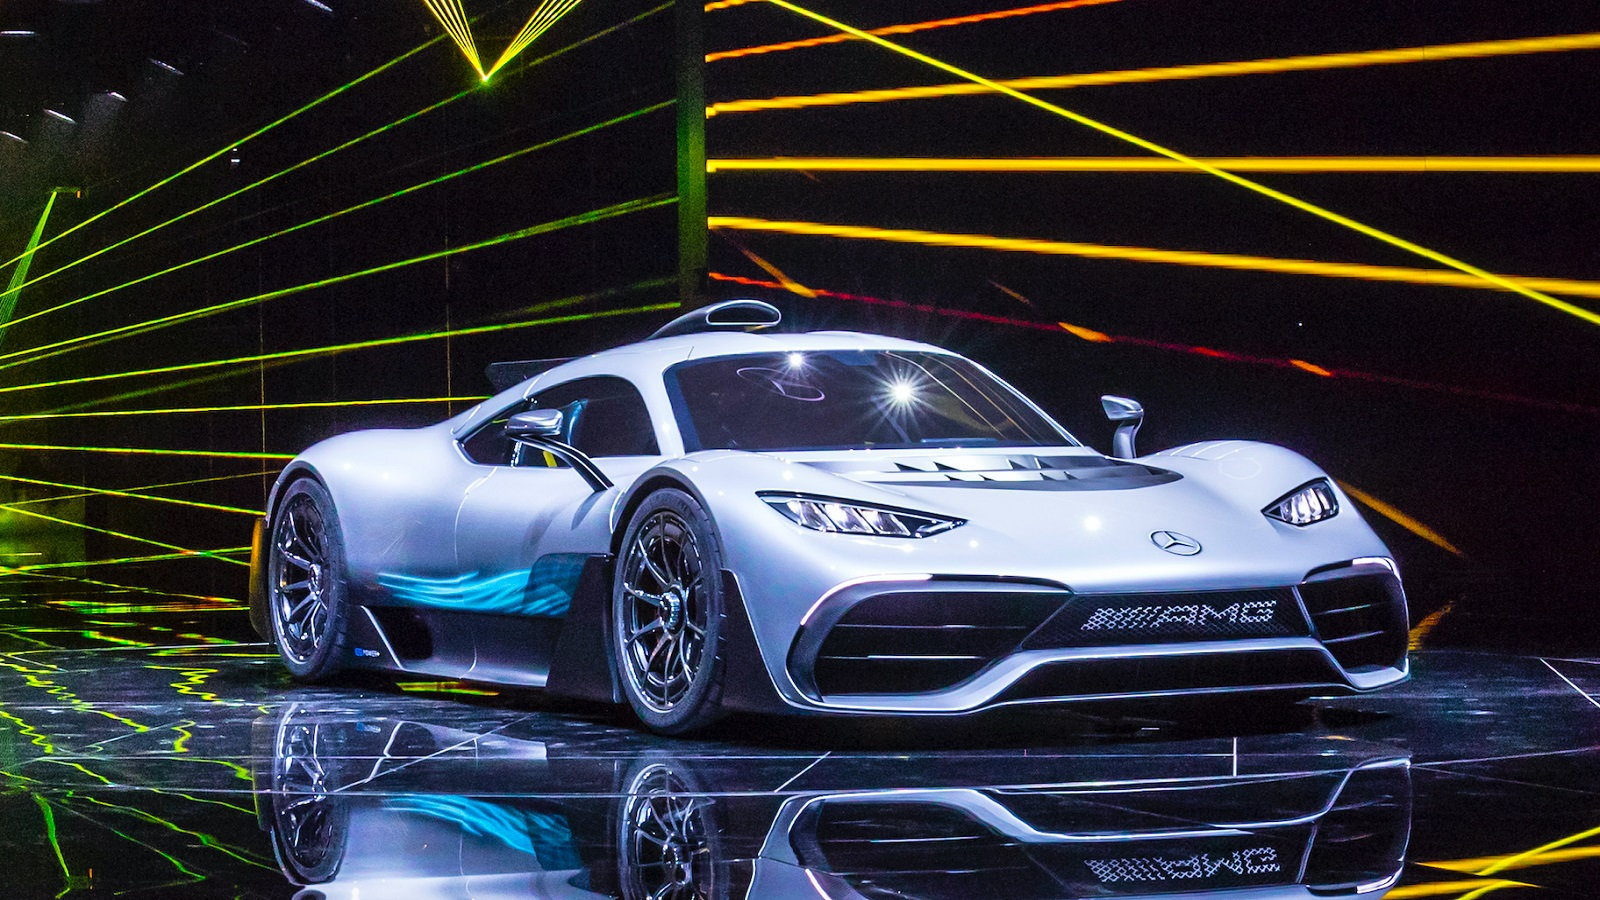 The AMG Project One Hypercar Makes Its Debut